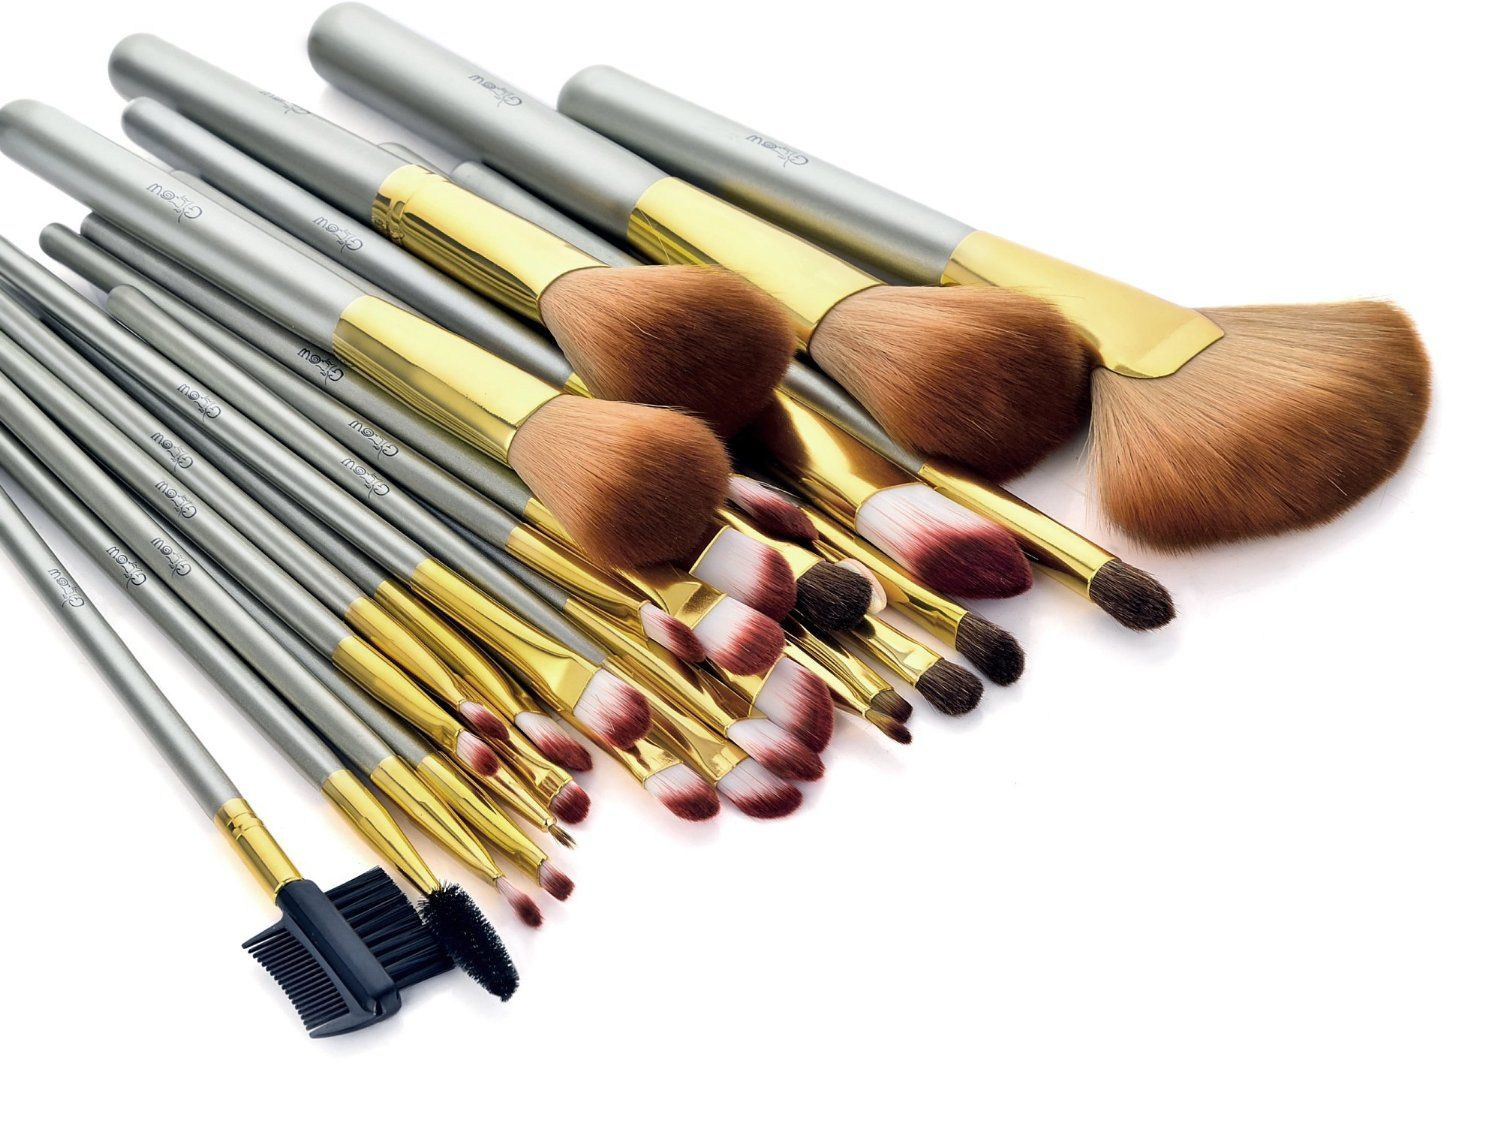 30 Brush Set in Gold Makeup supplies, Cosmetics